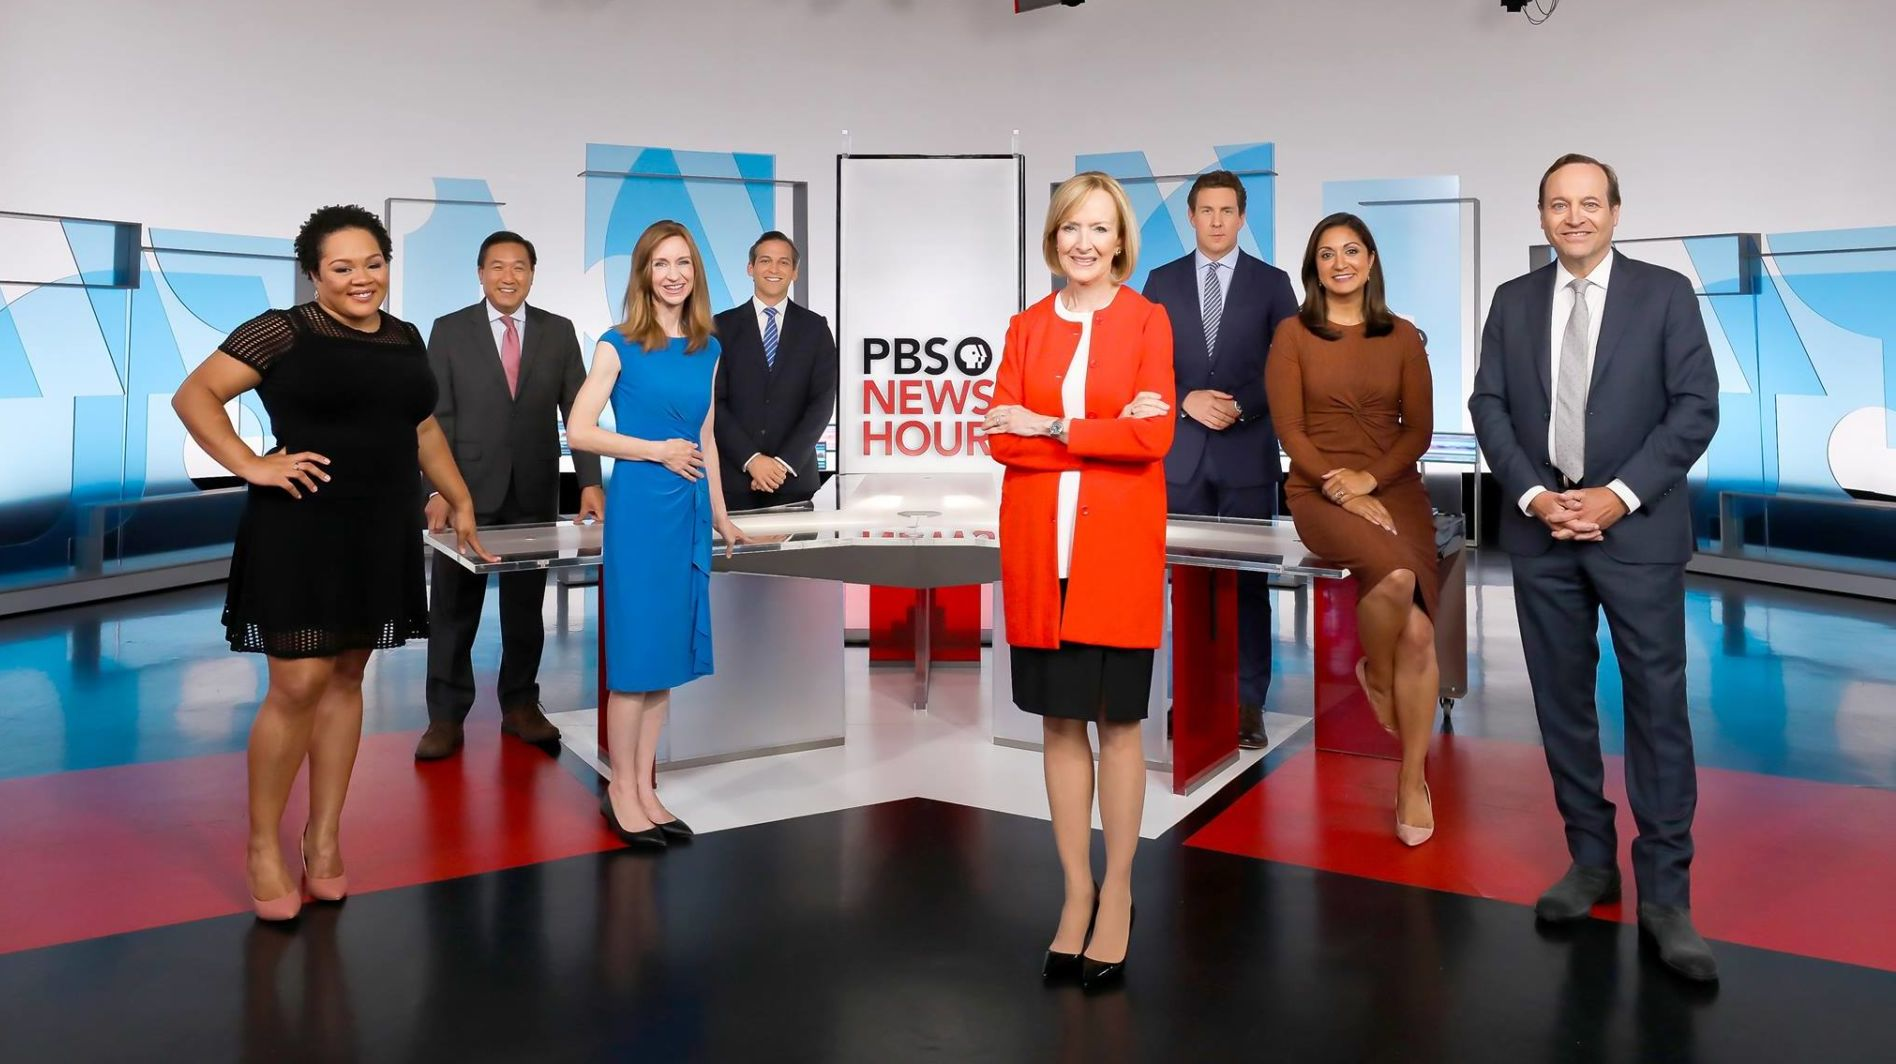 In a glossy TV studio, men and woman in business tire spread out and pose for a publicity photo. In the enter, an older woman in bright red jacket and black skirt folds her arms.